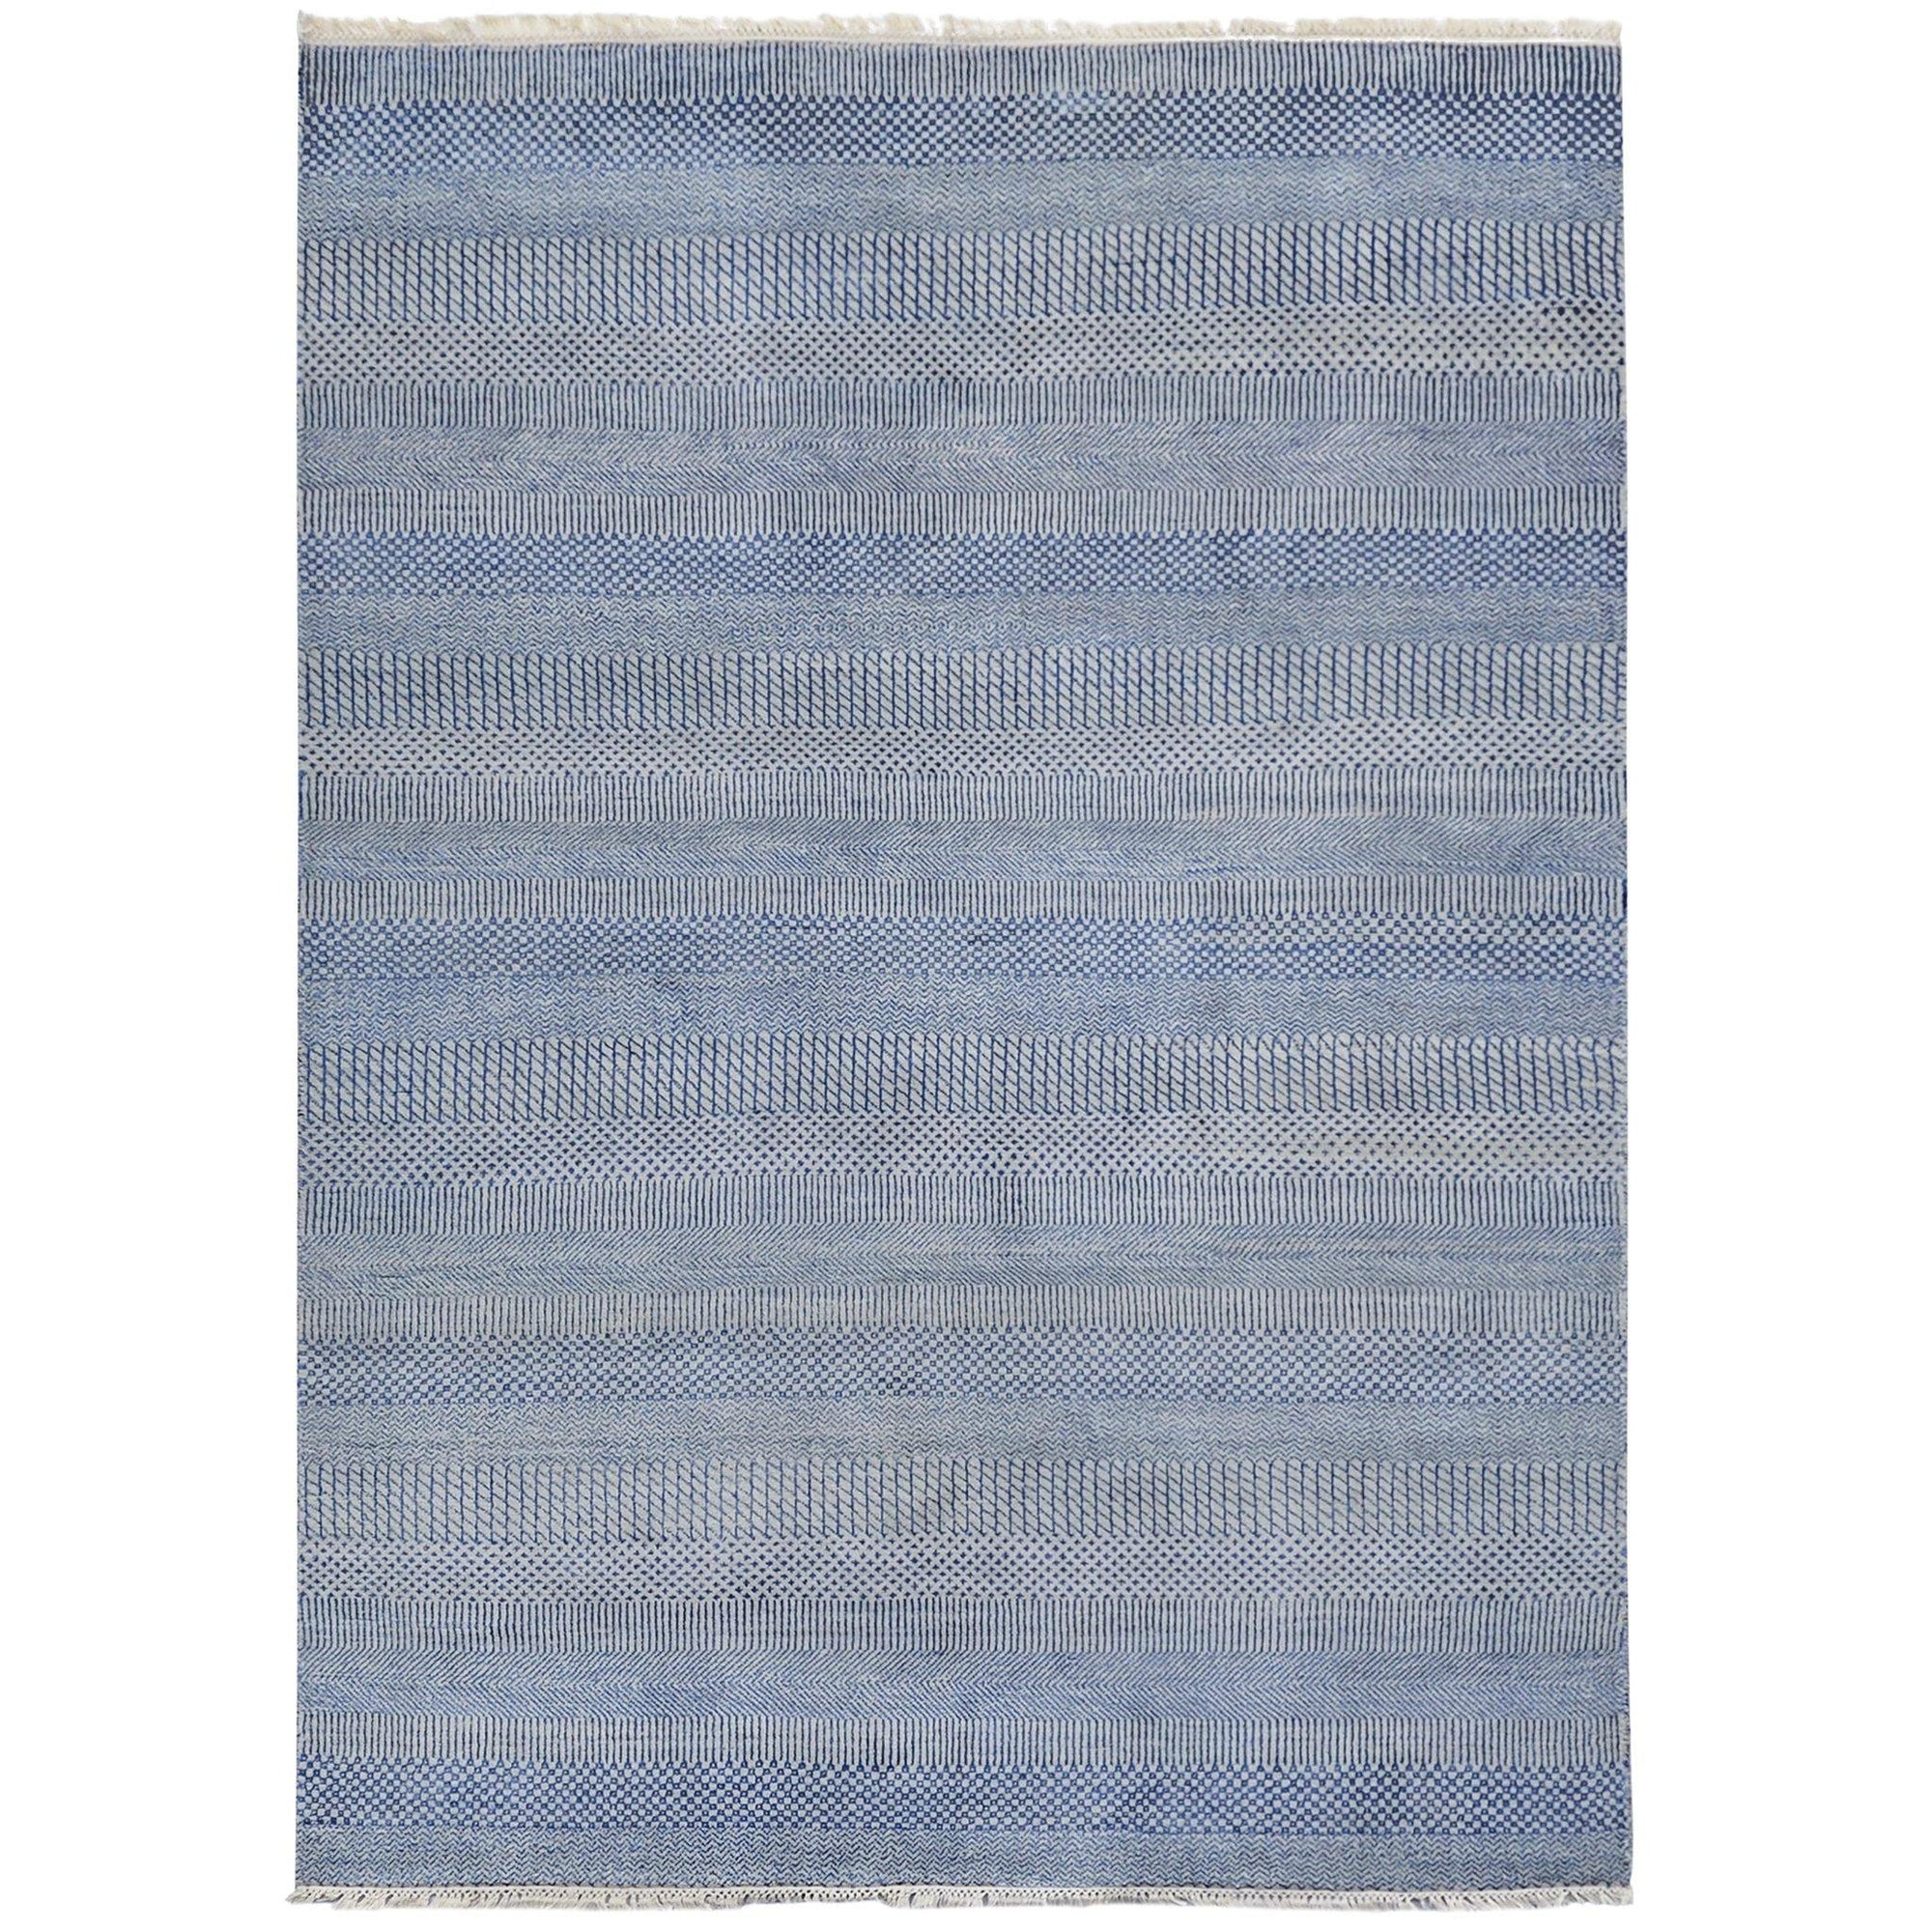 Contemporary Hand-knotted NZ Wool Rug 156cm x 234cm Persian-Rug | House-of-Haghi | NewMarket | Auckland | NZ | Handmade Persian Rugs | Hand Knotted Persian Rugs